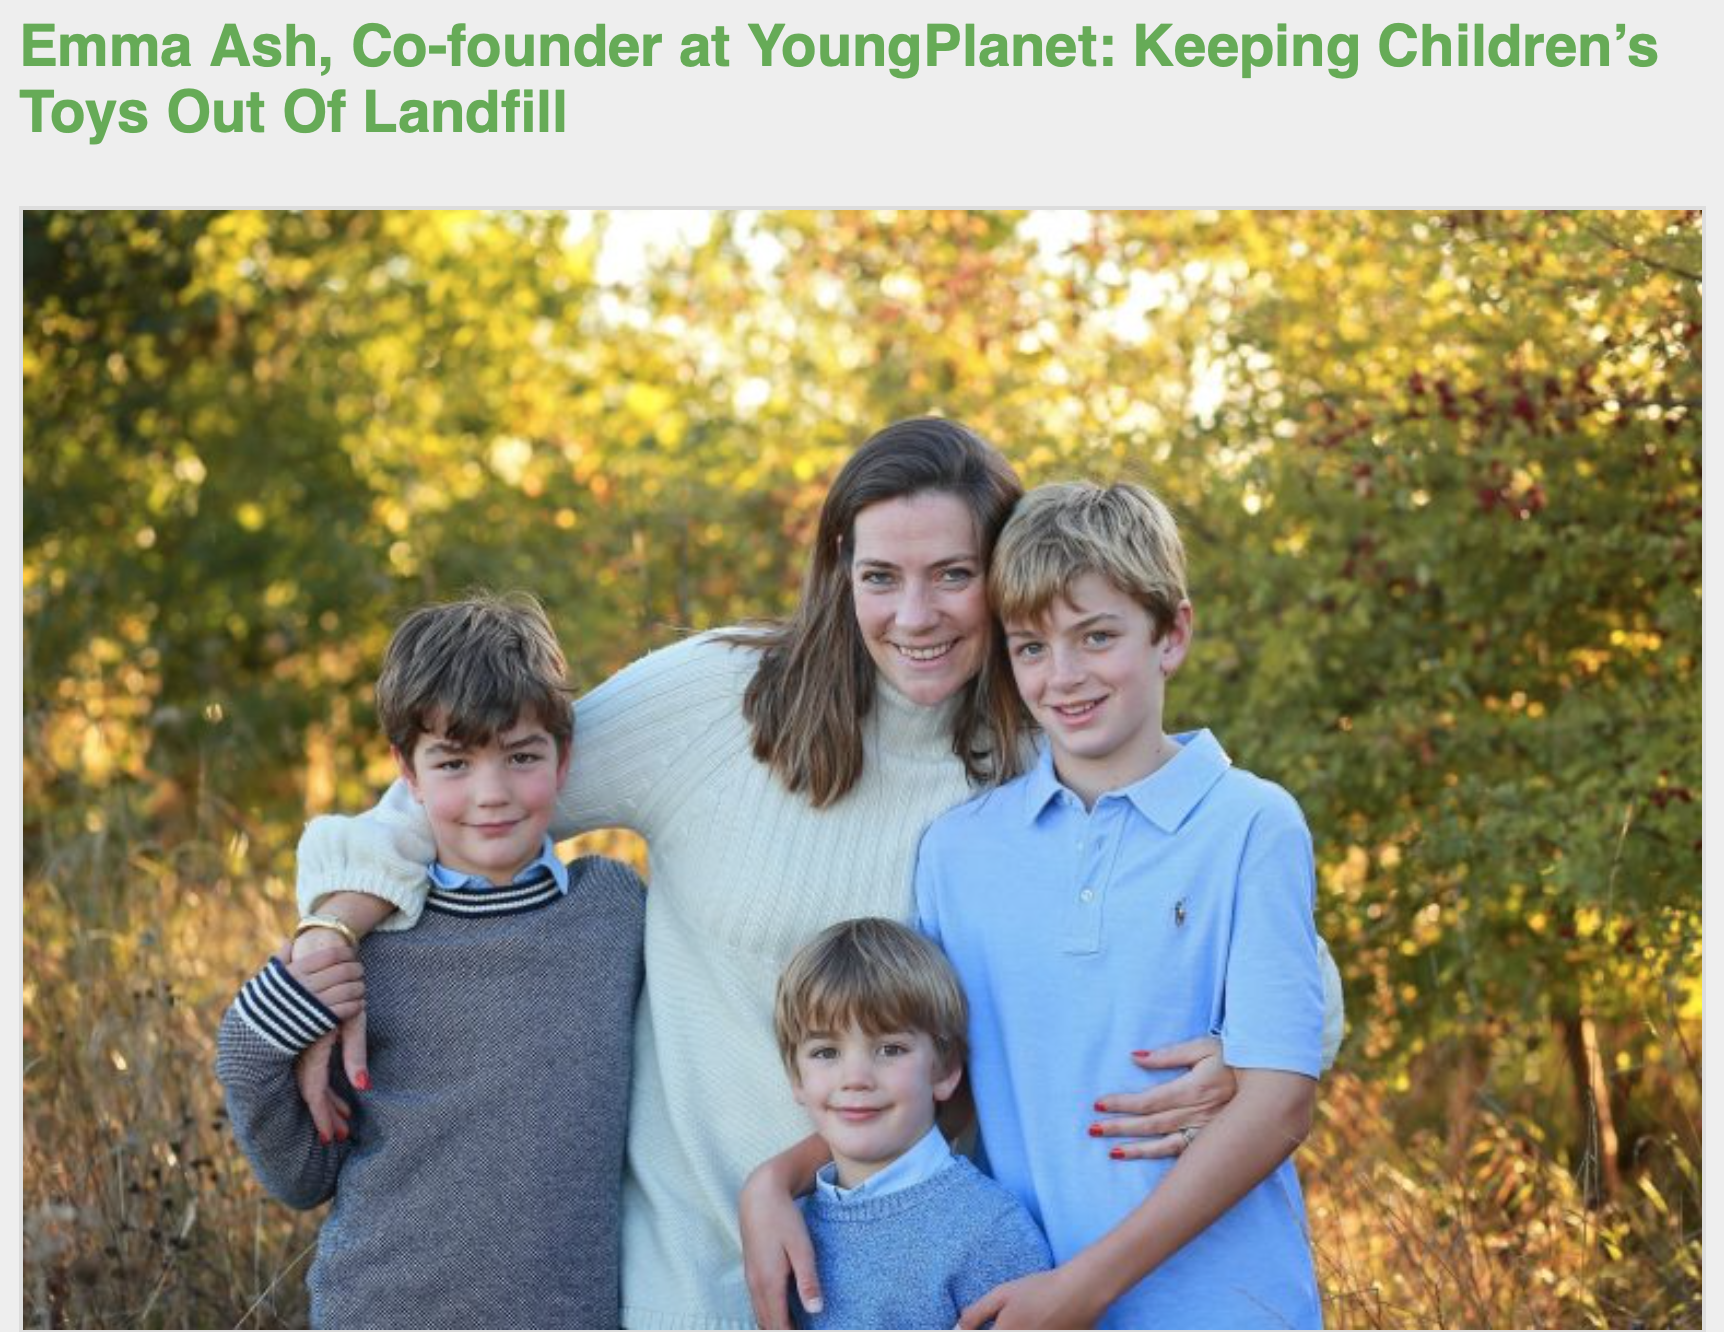 Co-founder Emma shares more about YoungPlanet and her advice for other aspiring female entrepreneurs in an interview with TechRound.